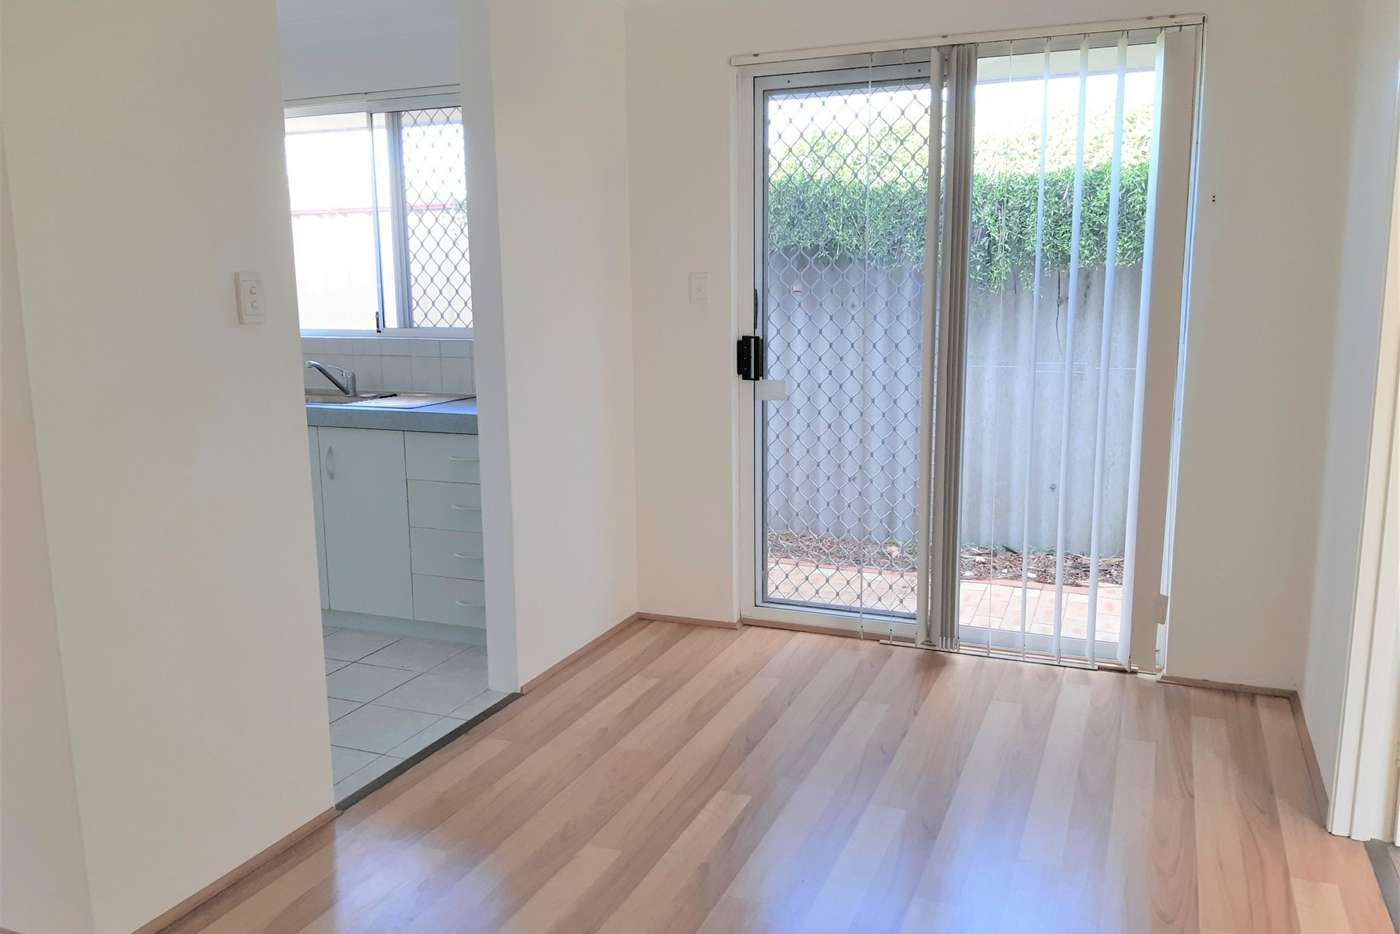 Seventh view of Homely villa listing, 5/38 Woodloes Street, Cannington WA 6107